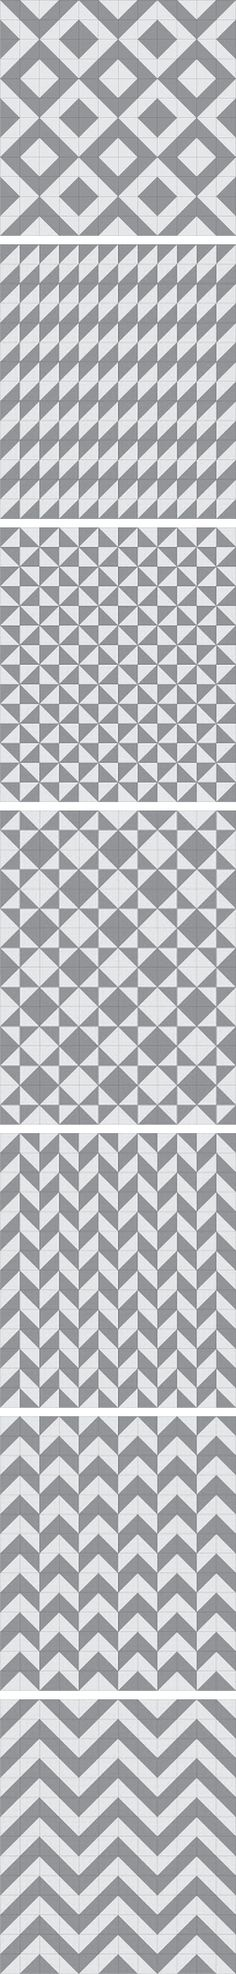 Seven more half-square triangle layout patterns.